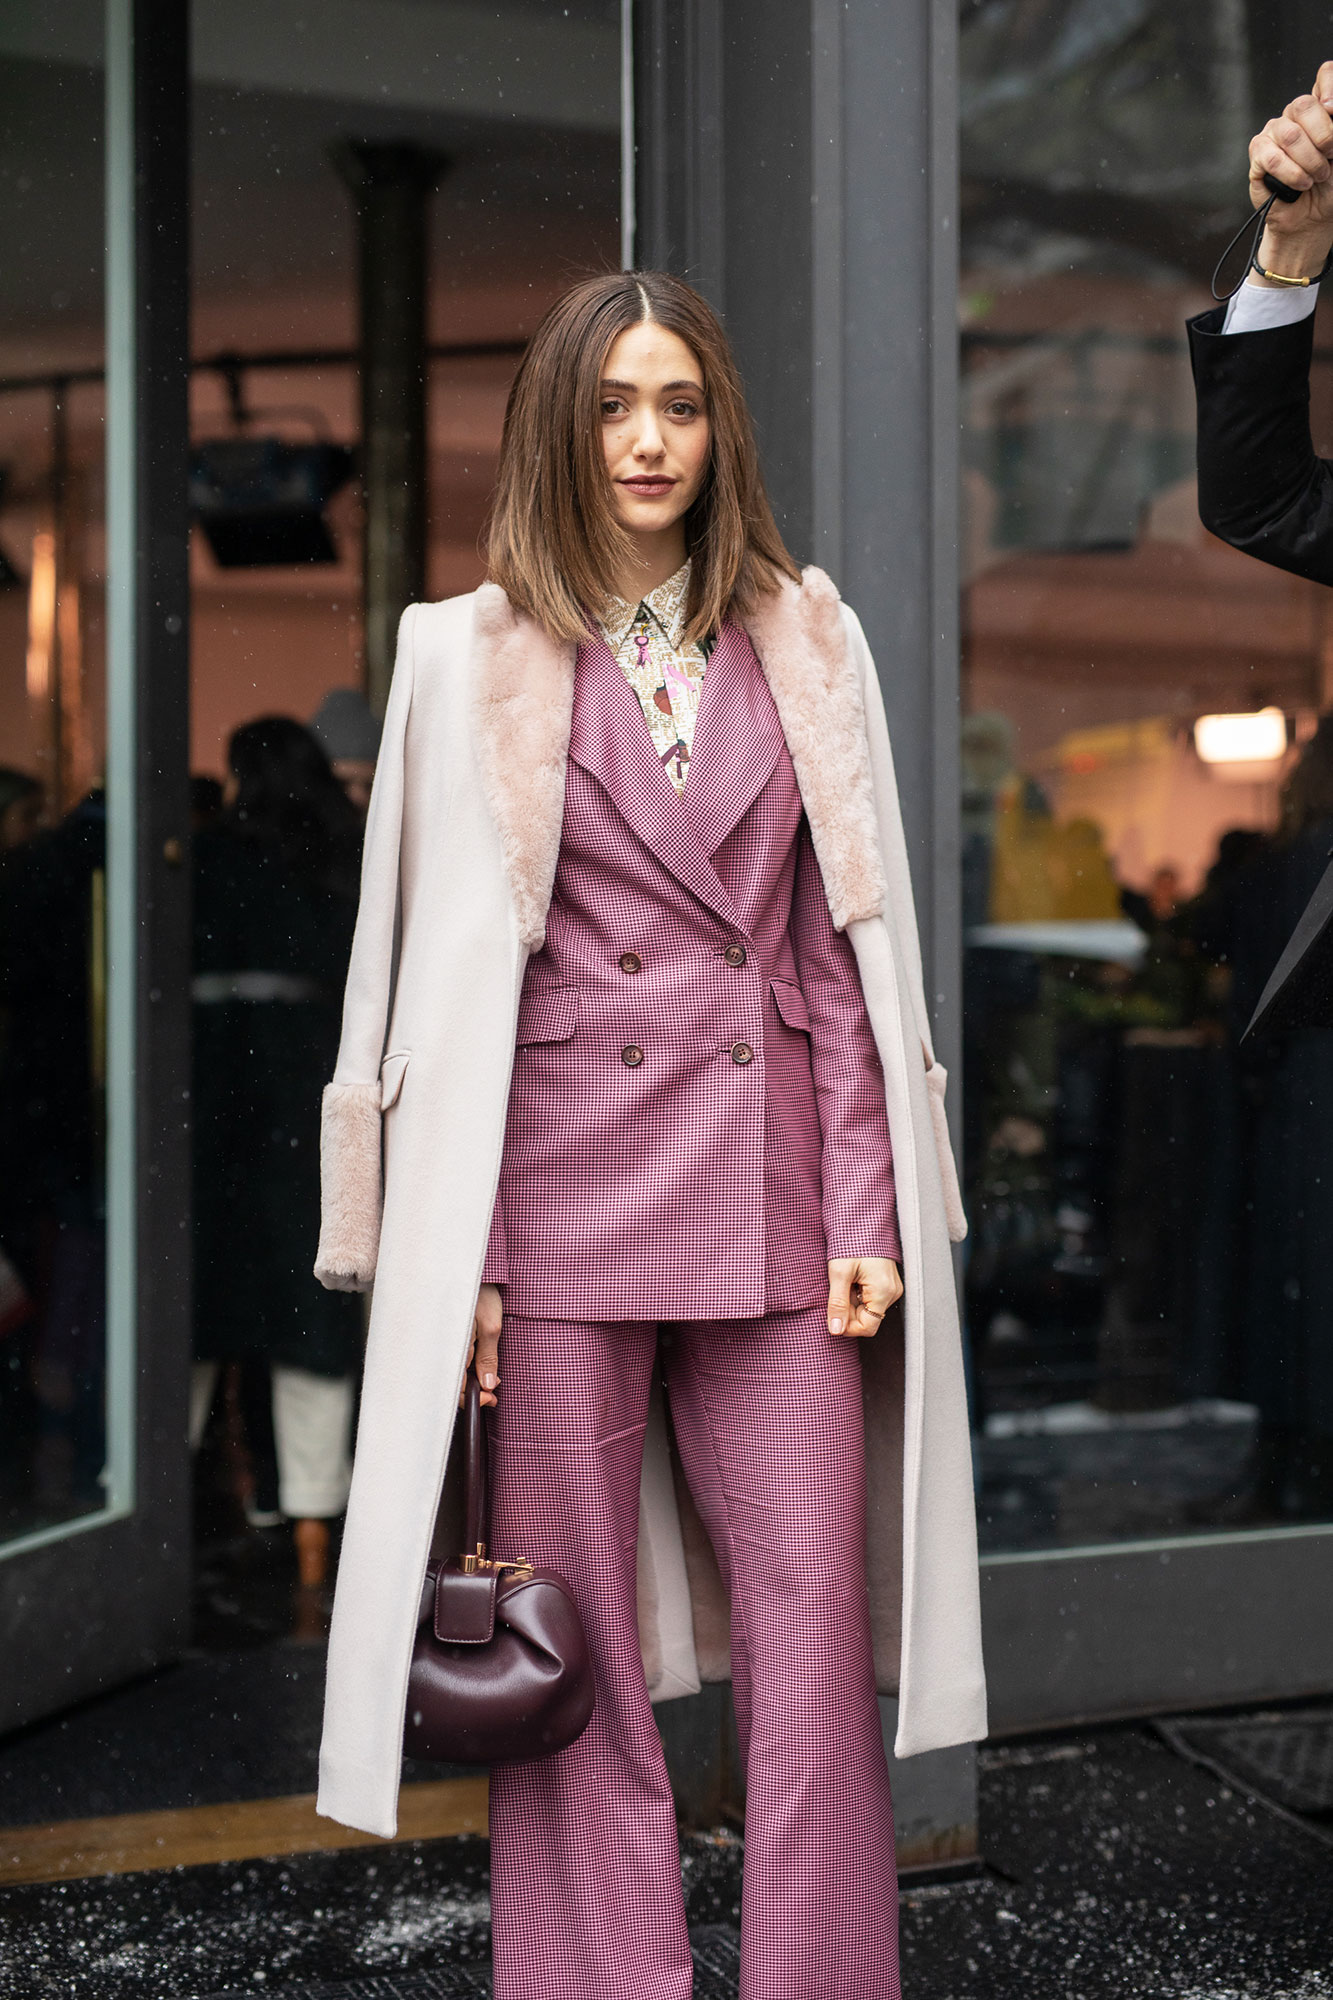 Emmy Rossum - Emmy Rossum is seen on the street during New York Fashion Week AW19 wearing pink suit with taupe coat on February 12, 2019 in New York City.